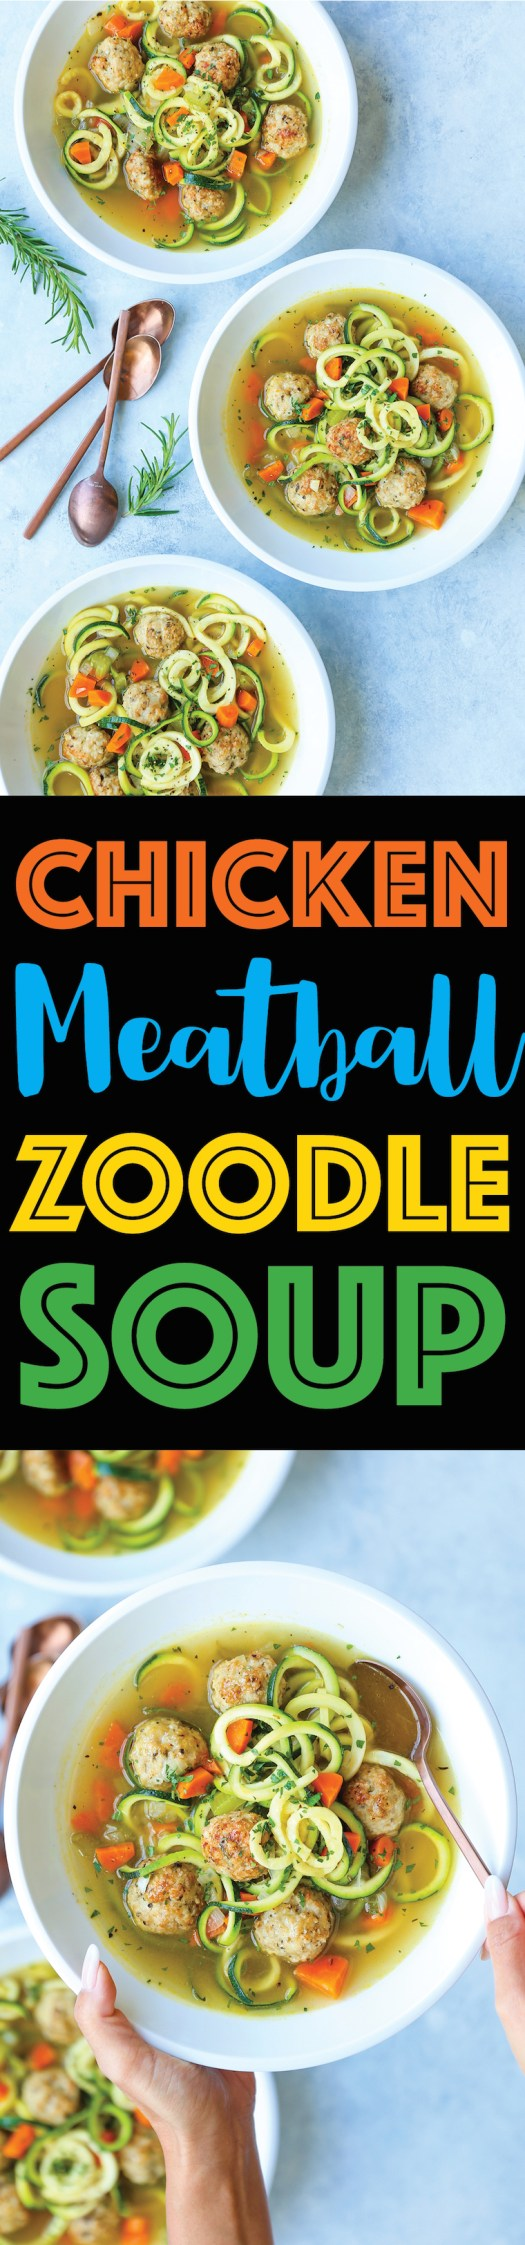 Chicken Meatball Zoodle Soup - Everyone's favorite chicken noodle soup, but made even healthier with zucchini noodles and the most tender chicken meatballs!